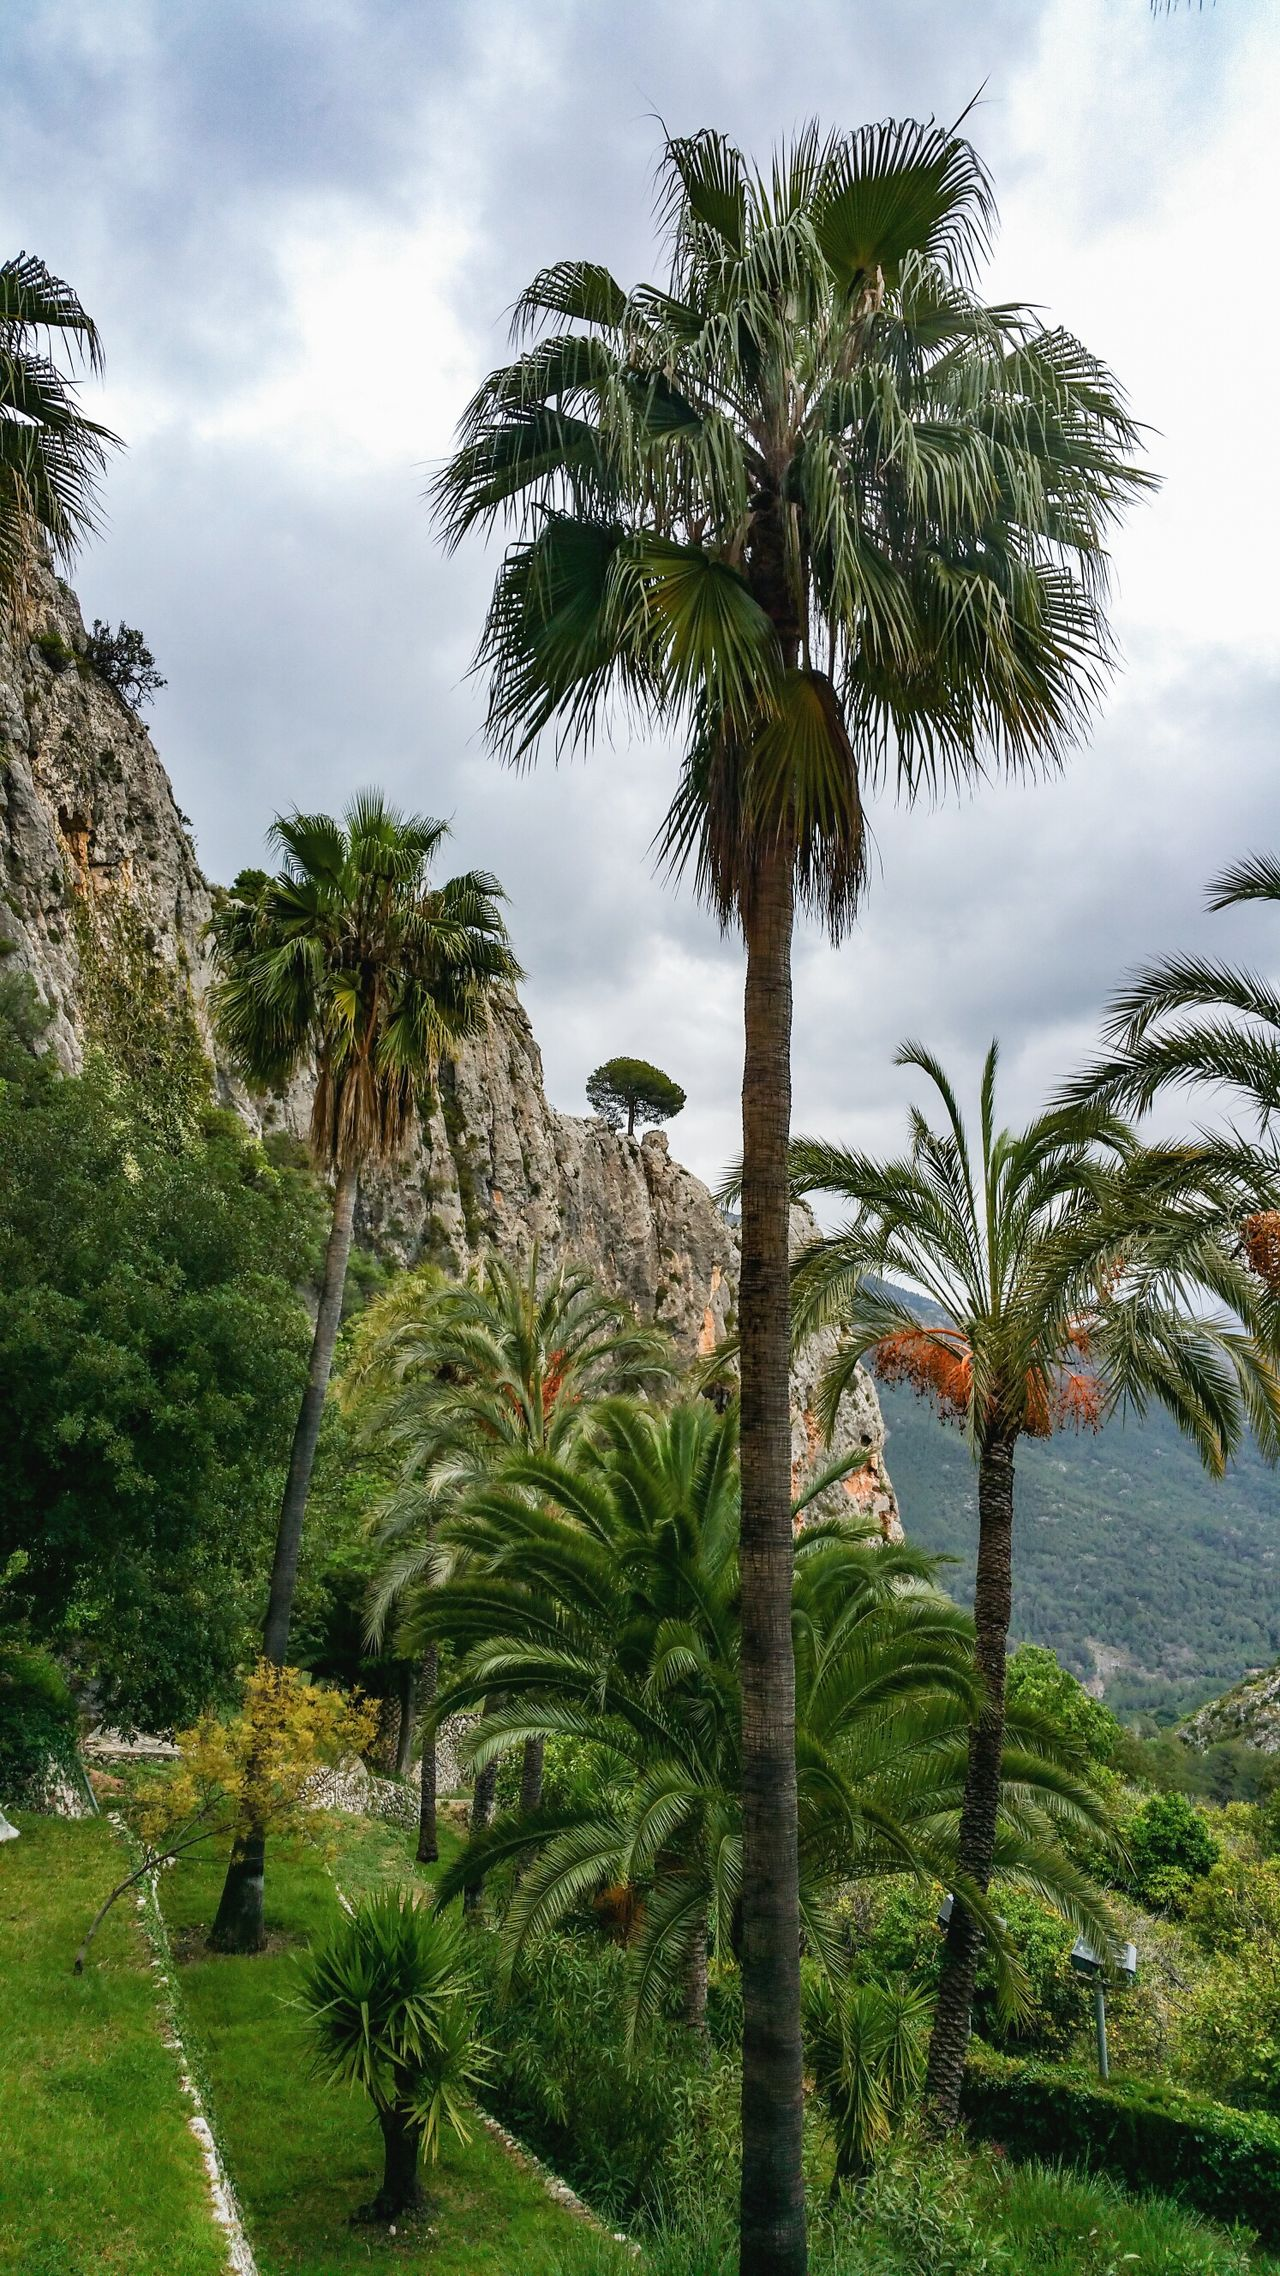 Tree Growth Palm Tree Terrace Guadalest Spain Mediterranean  Mountain Spring Mediterranean  Landscape Valencia, Spain Travel España Travel Destinations Nature Beauty In Nature Green Color Branch Cloud - Sky No People Freshness Springtime SPAIN Outdoors Day